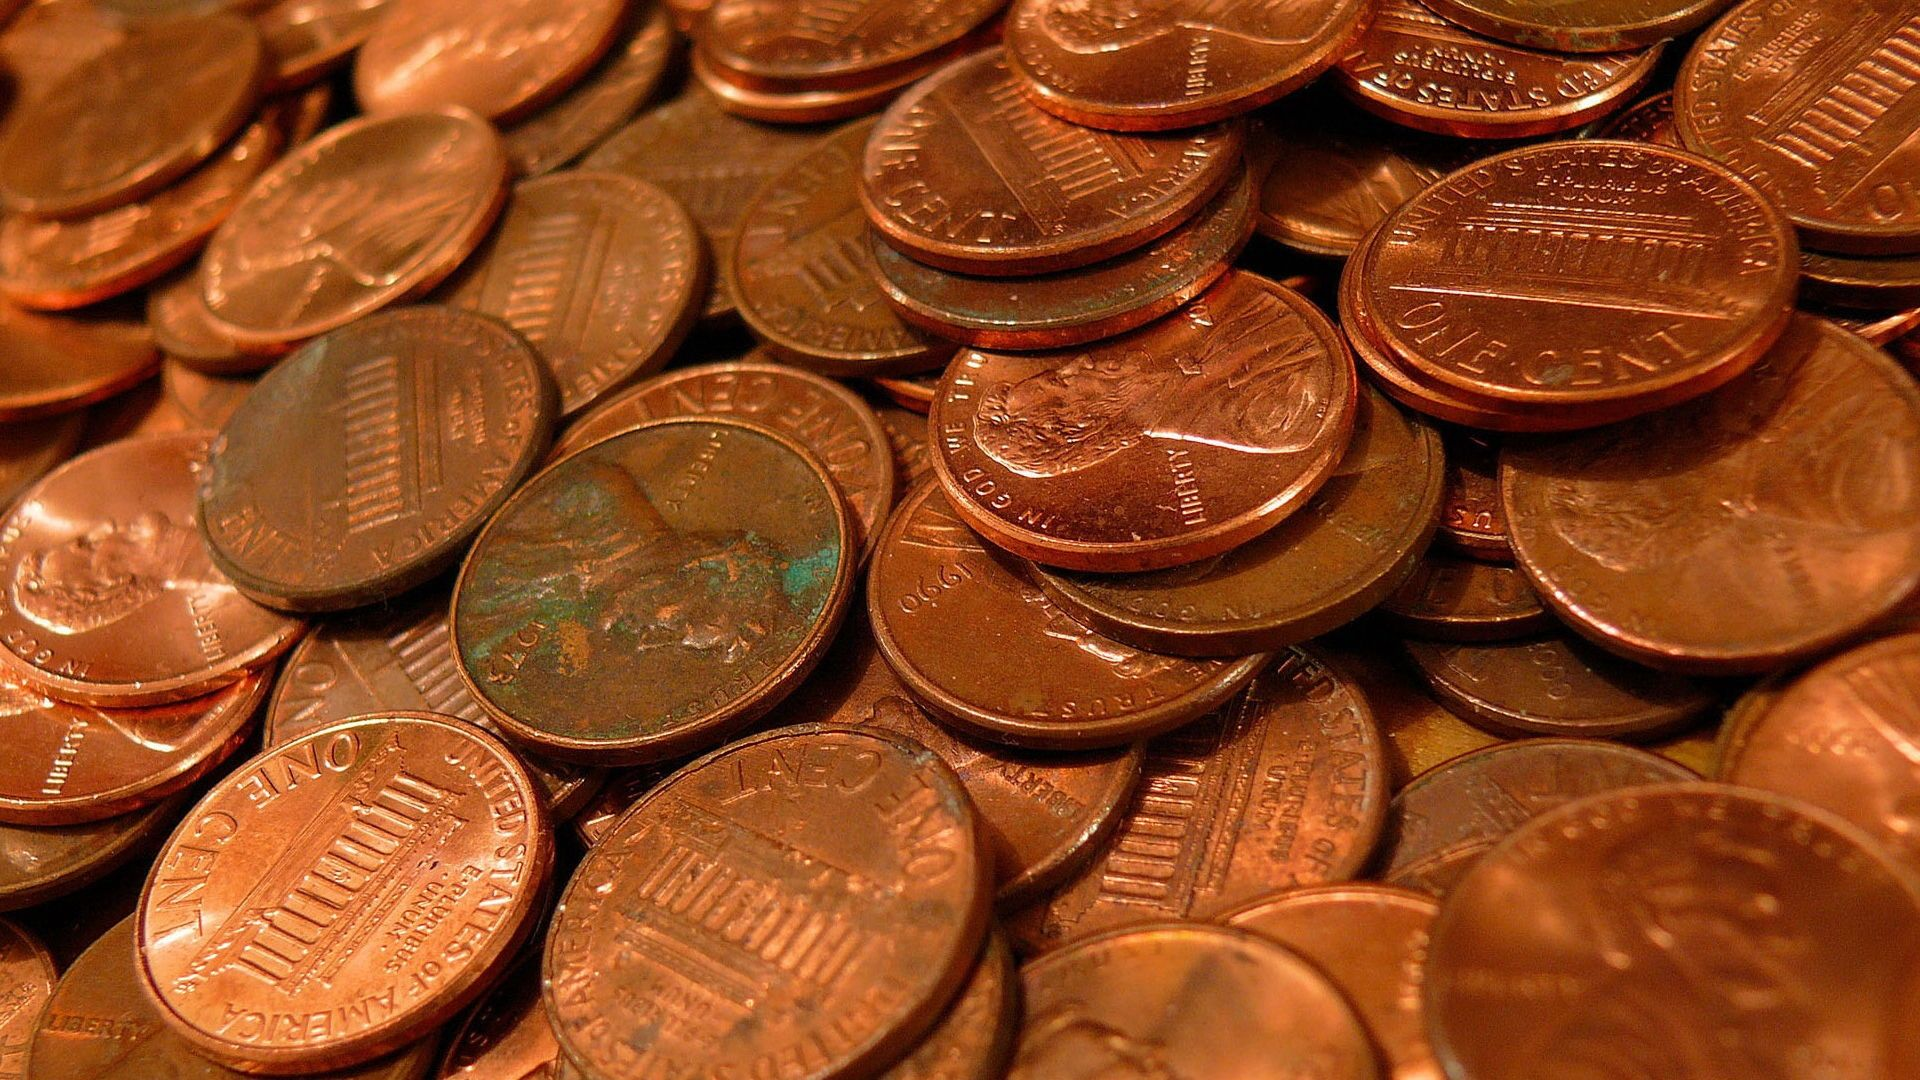 Chinese Gold Coins Wide Hd New Wallpaper In Fullscreen Free